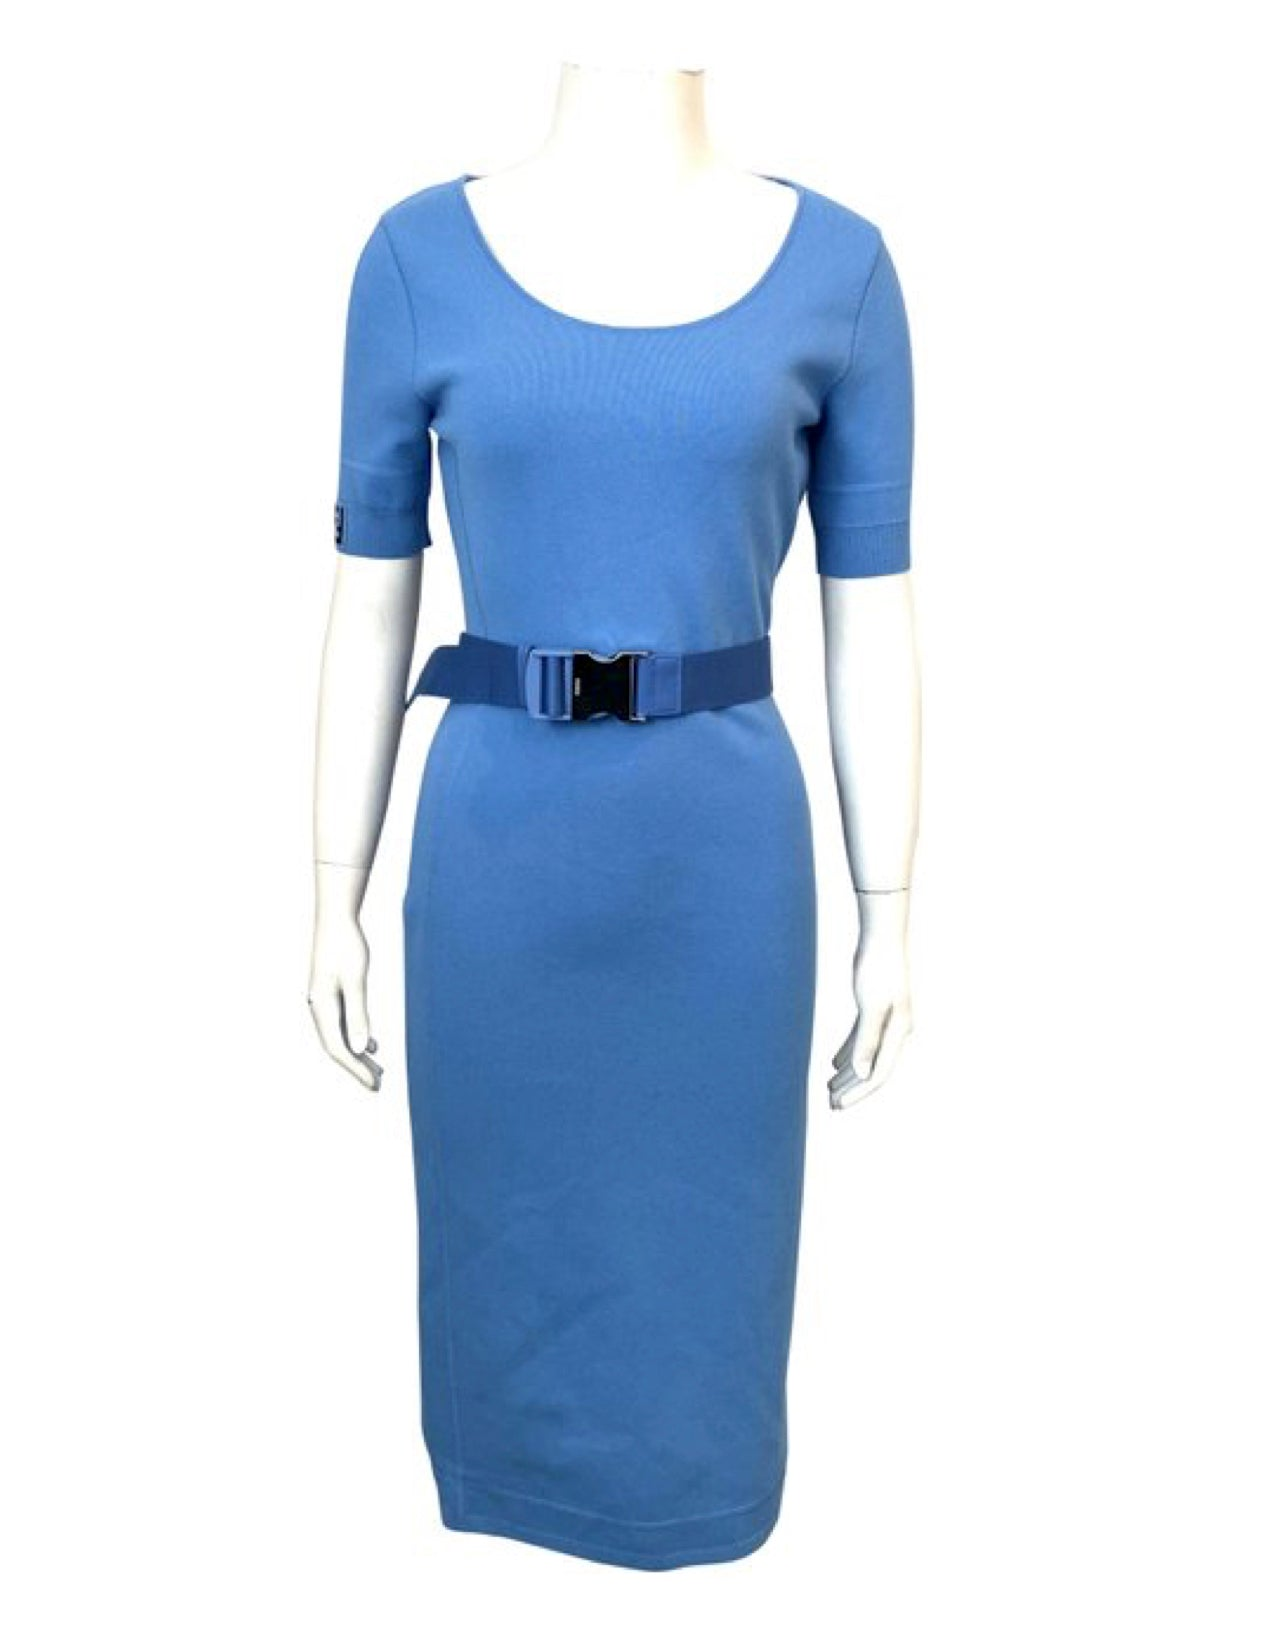 Fendi Blue Midi Dress with Belt Size 40